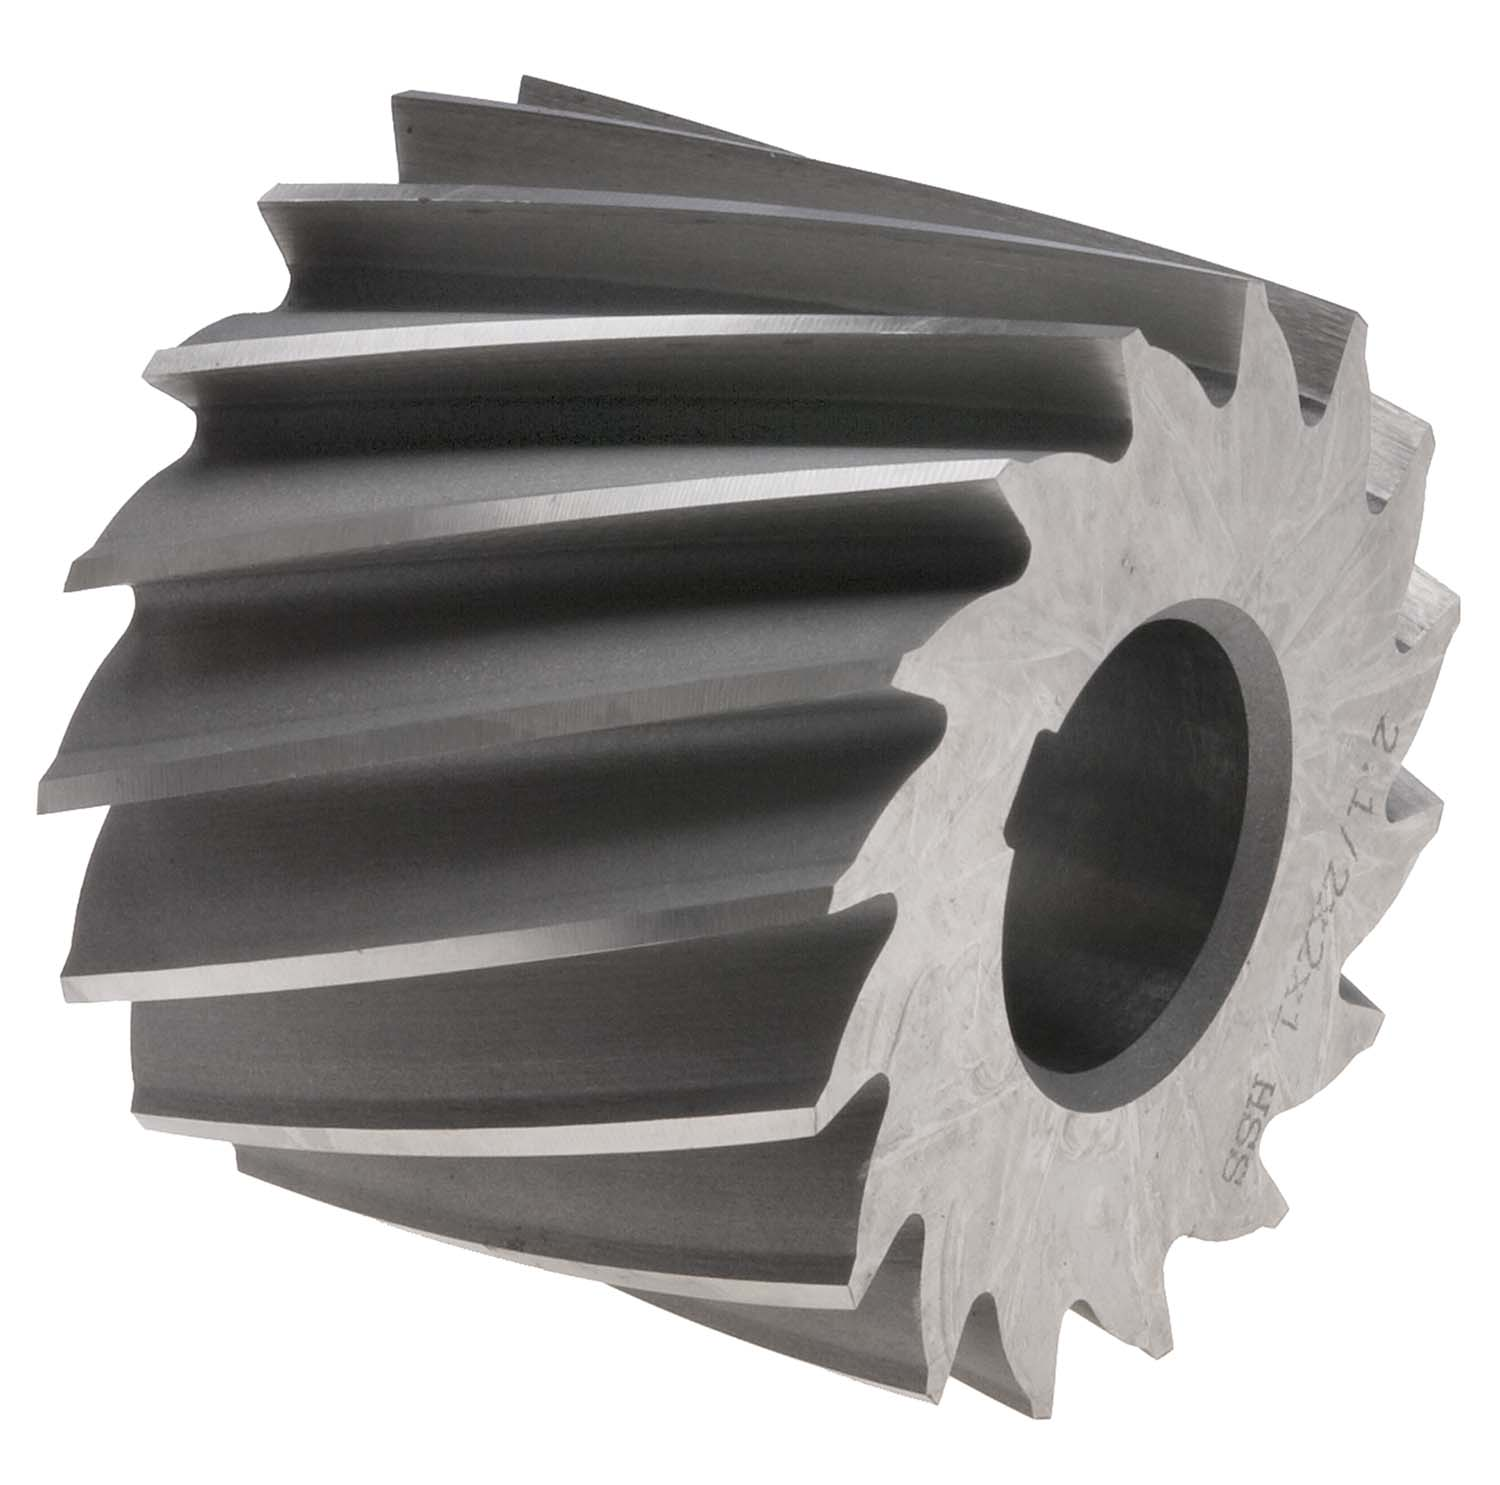 3 X 3/8 X 1-1/4 Plain Milling Cutter, High Speed Steel